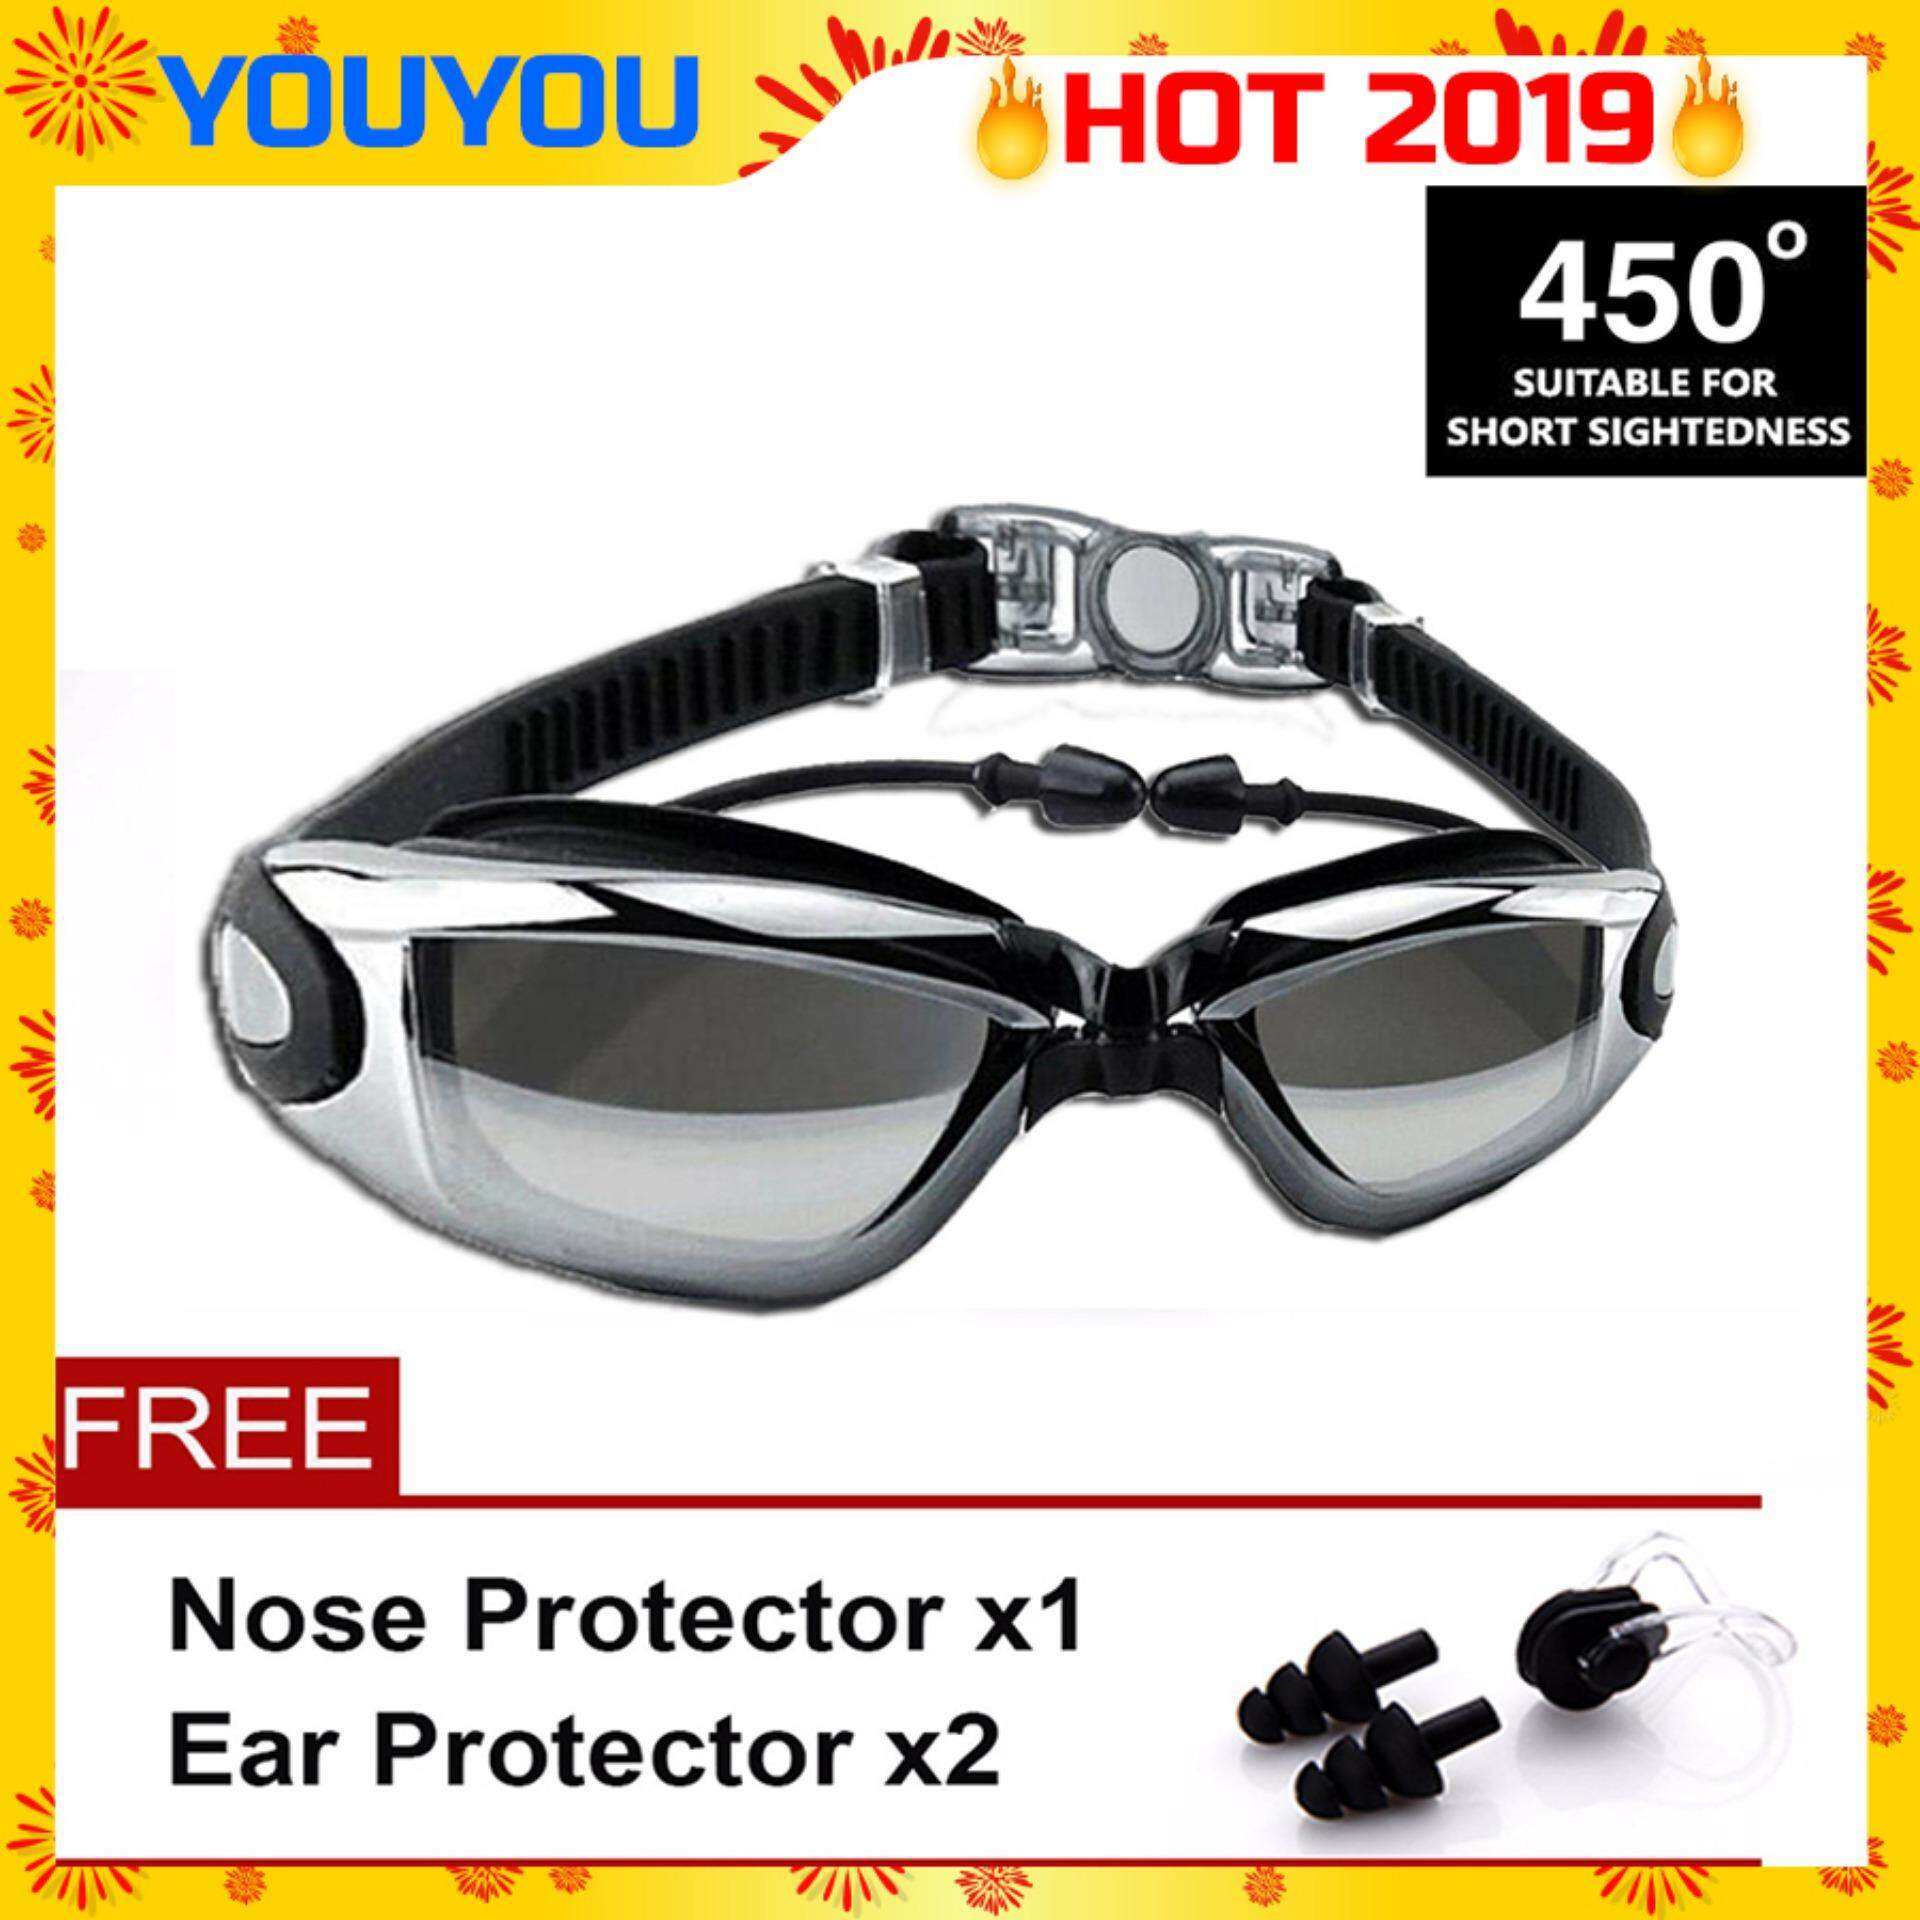 828a5ac7394 YOUYOU (450°) Adult Anti Fog Swimming Goggles High Defination Waterproof  Glasses with Protective